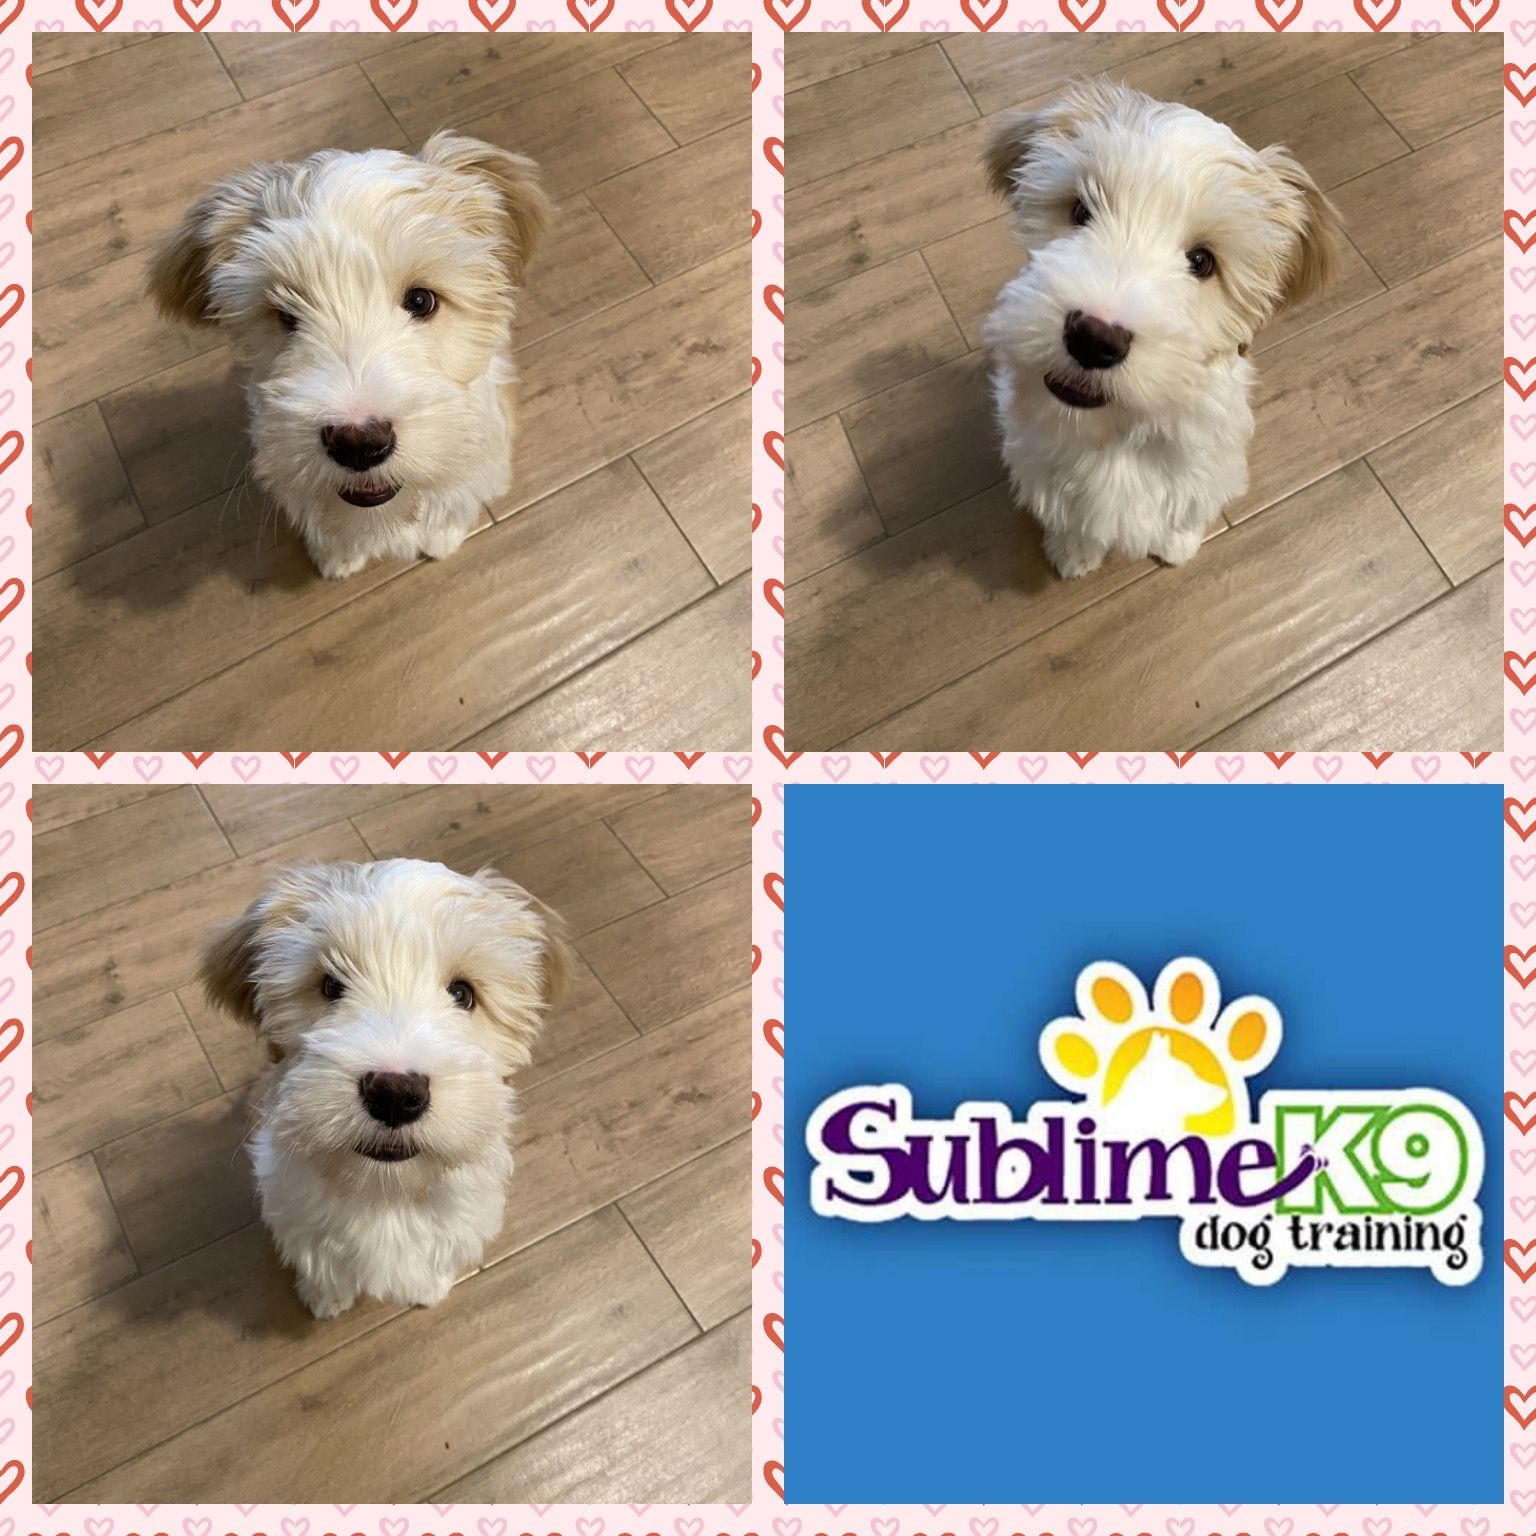 Long Island Dog Trainers Sublime K9 Puppy Trainer Therapy Dog